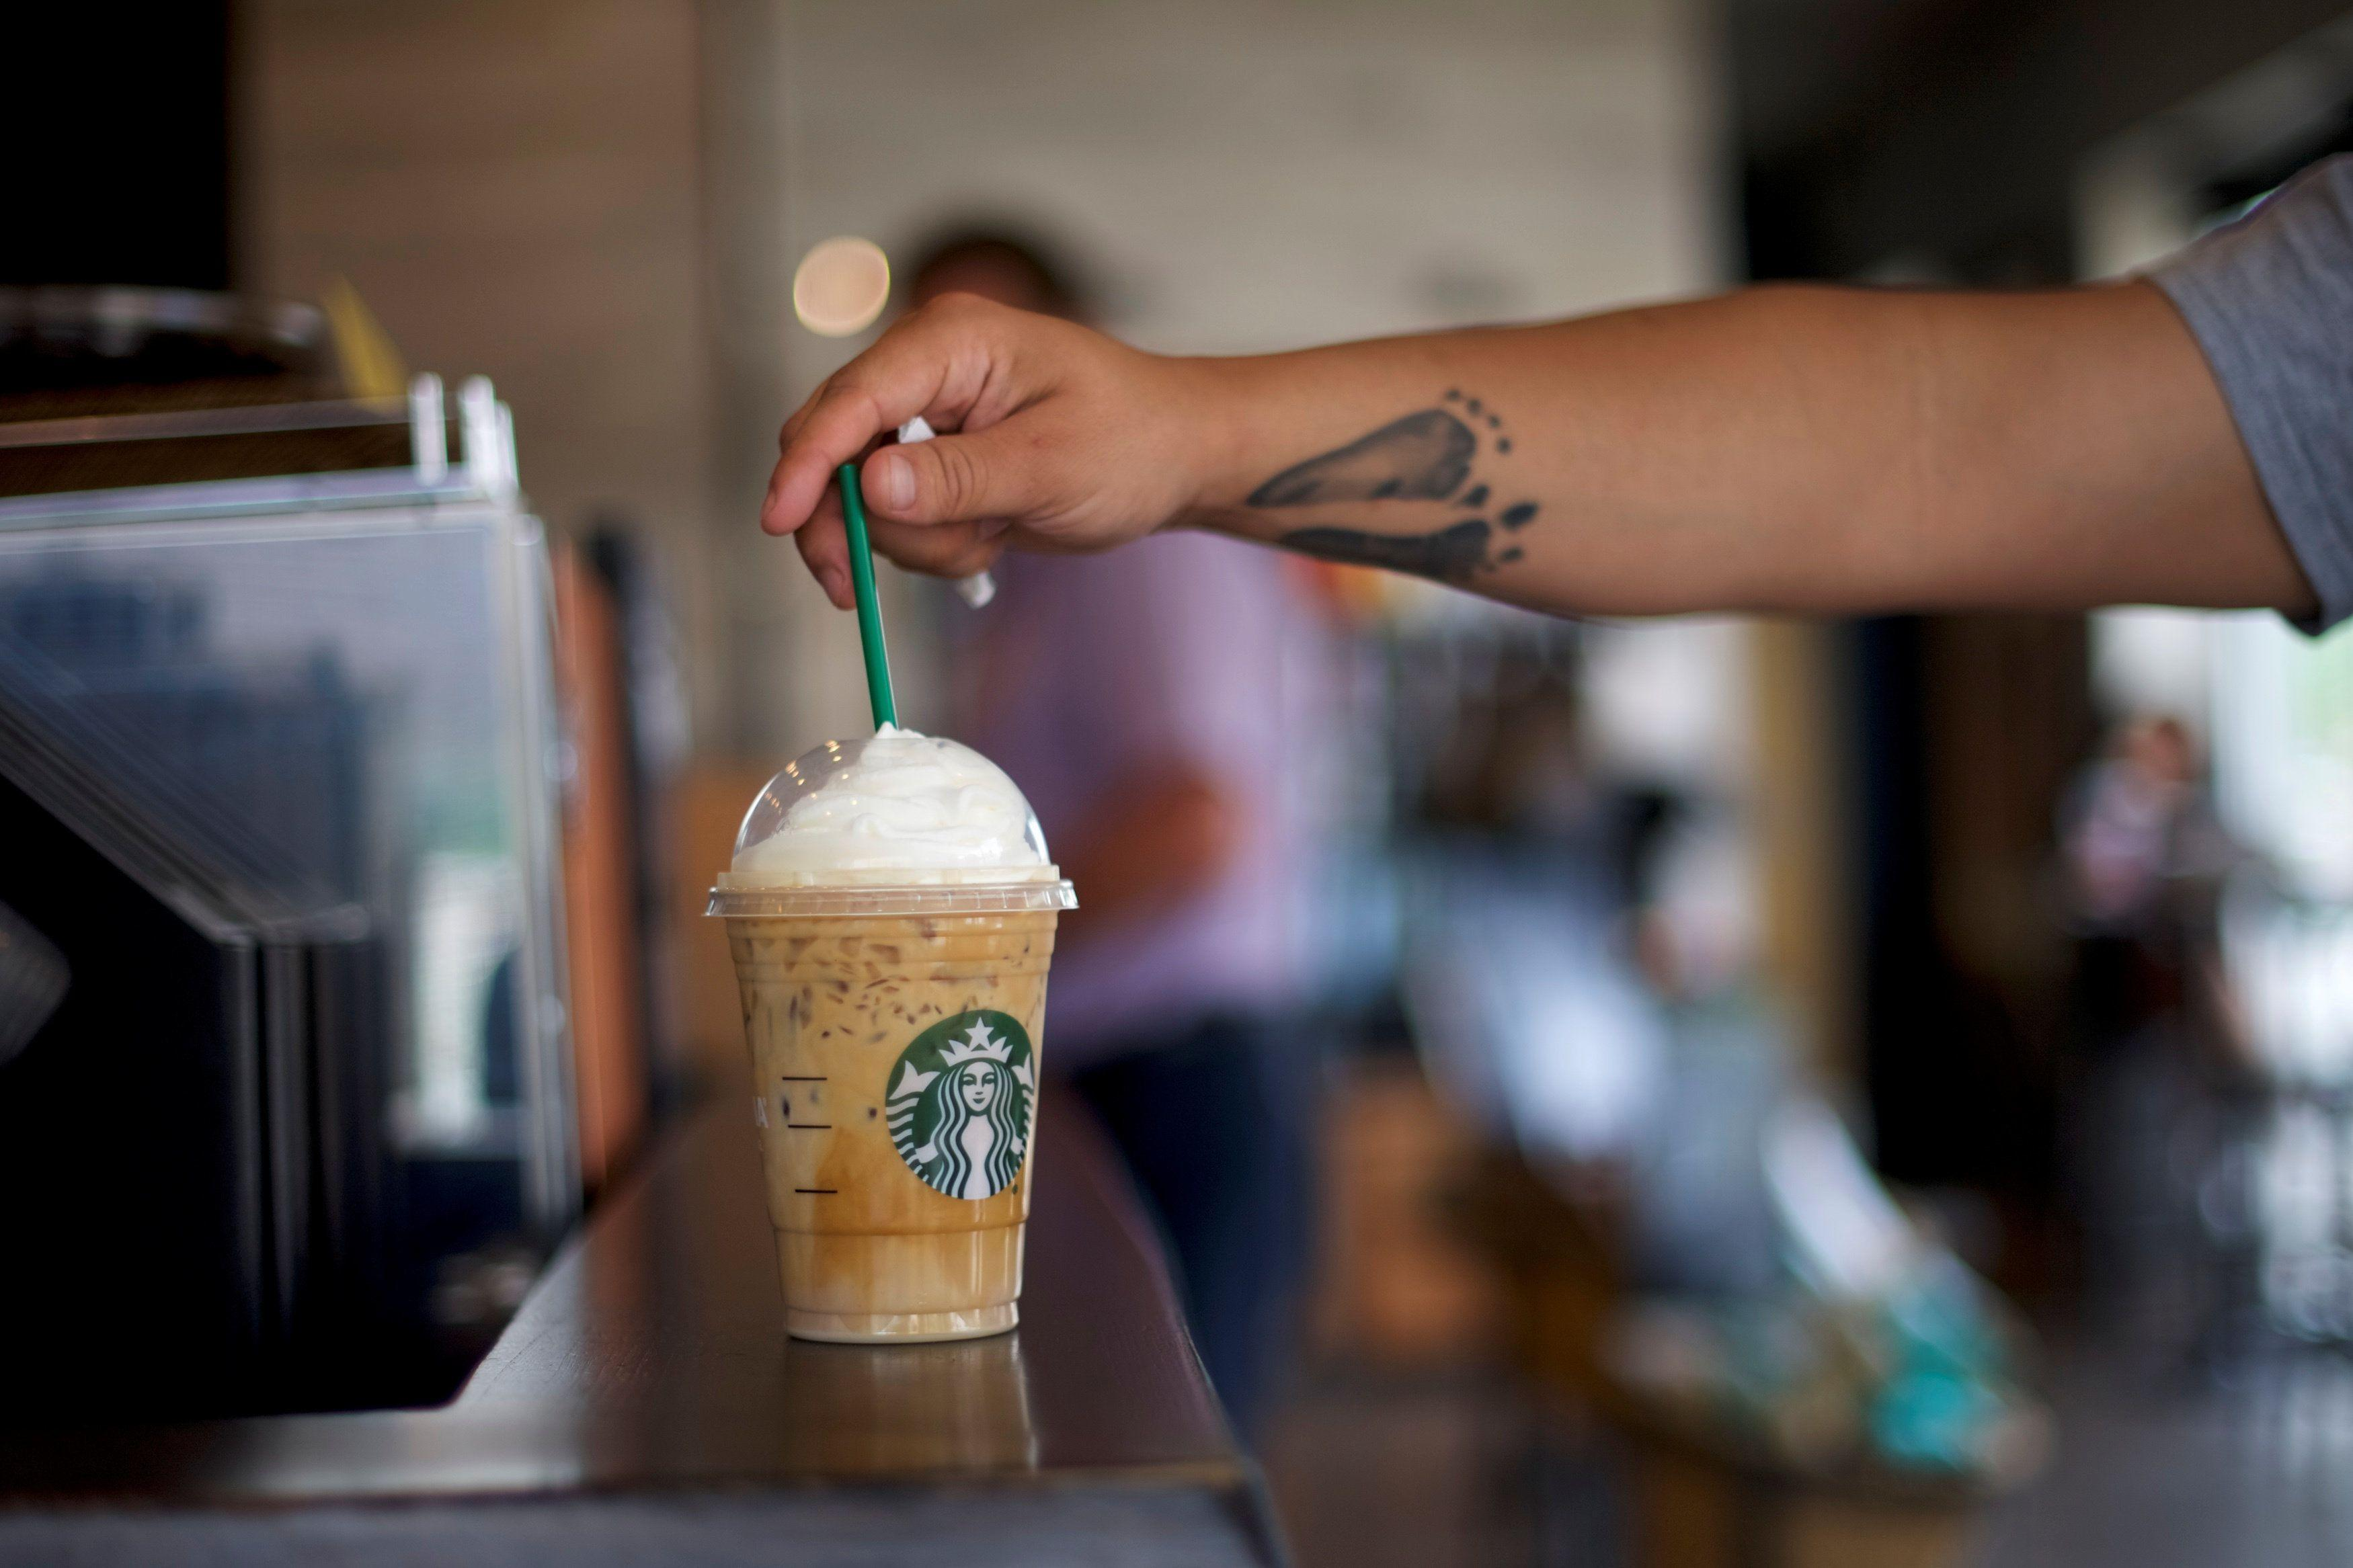 Starbucks makes $100 million private equity investment on the future of retail